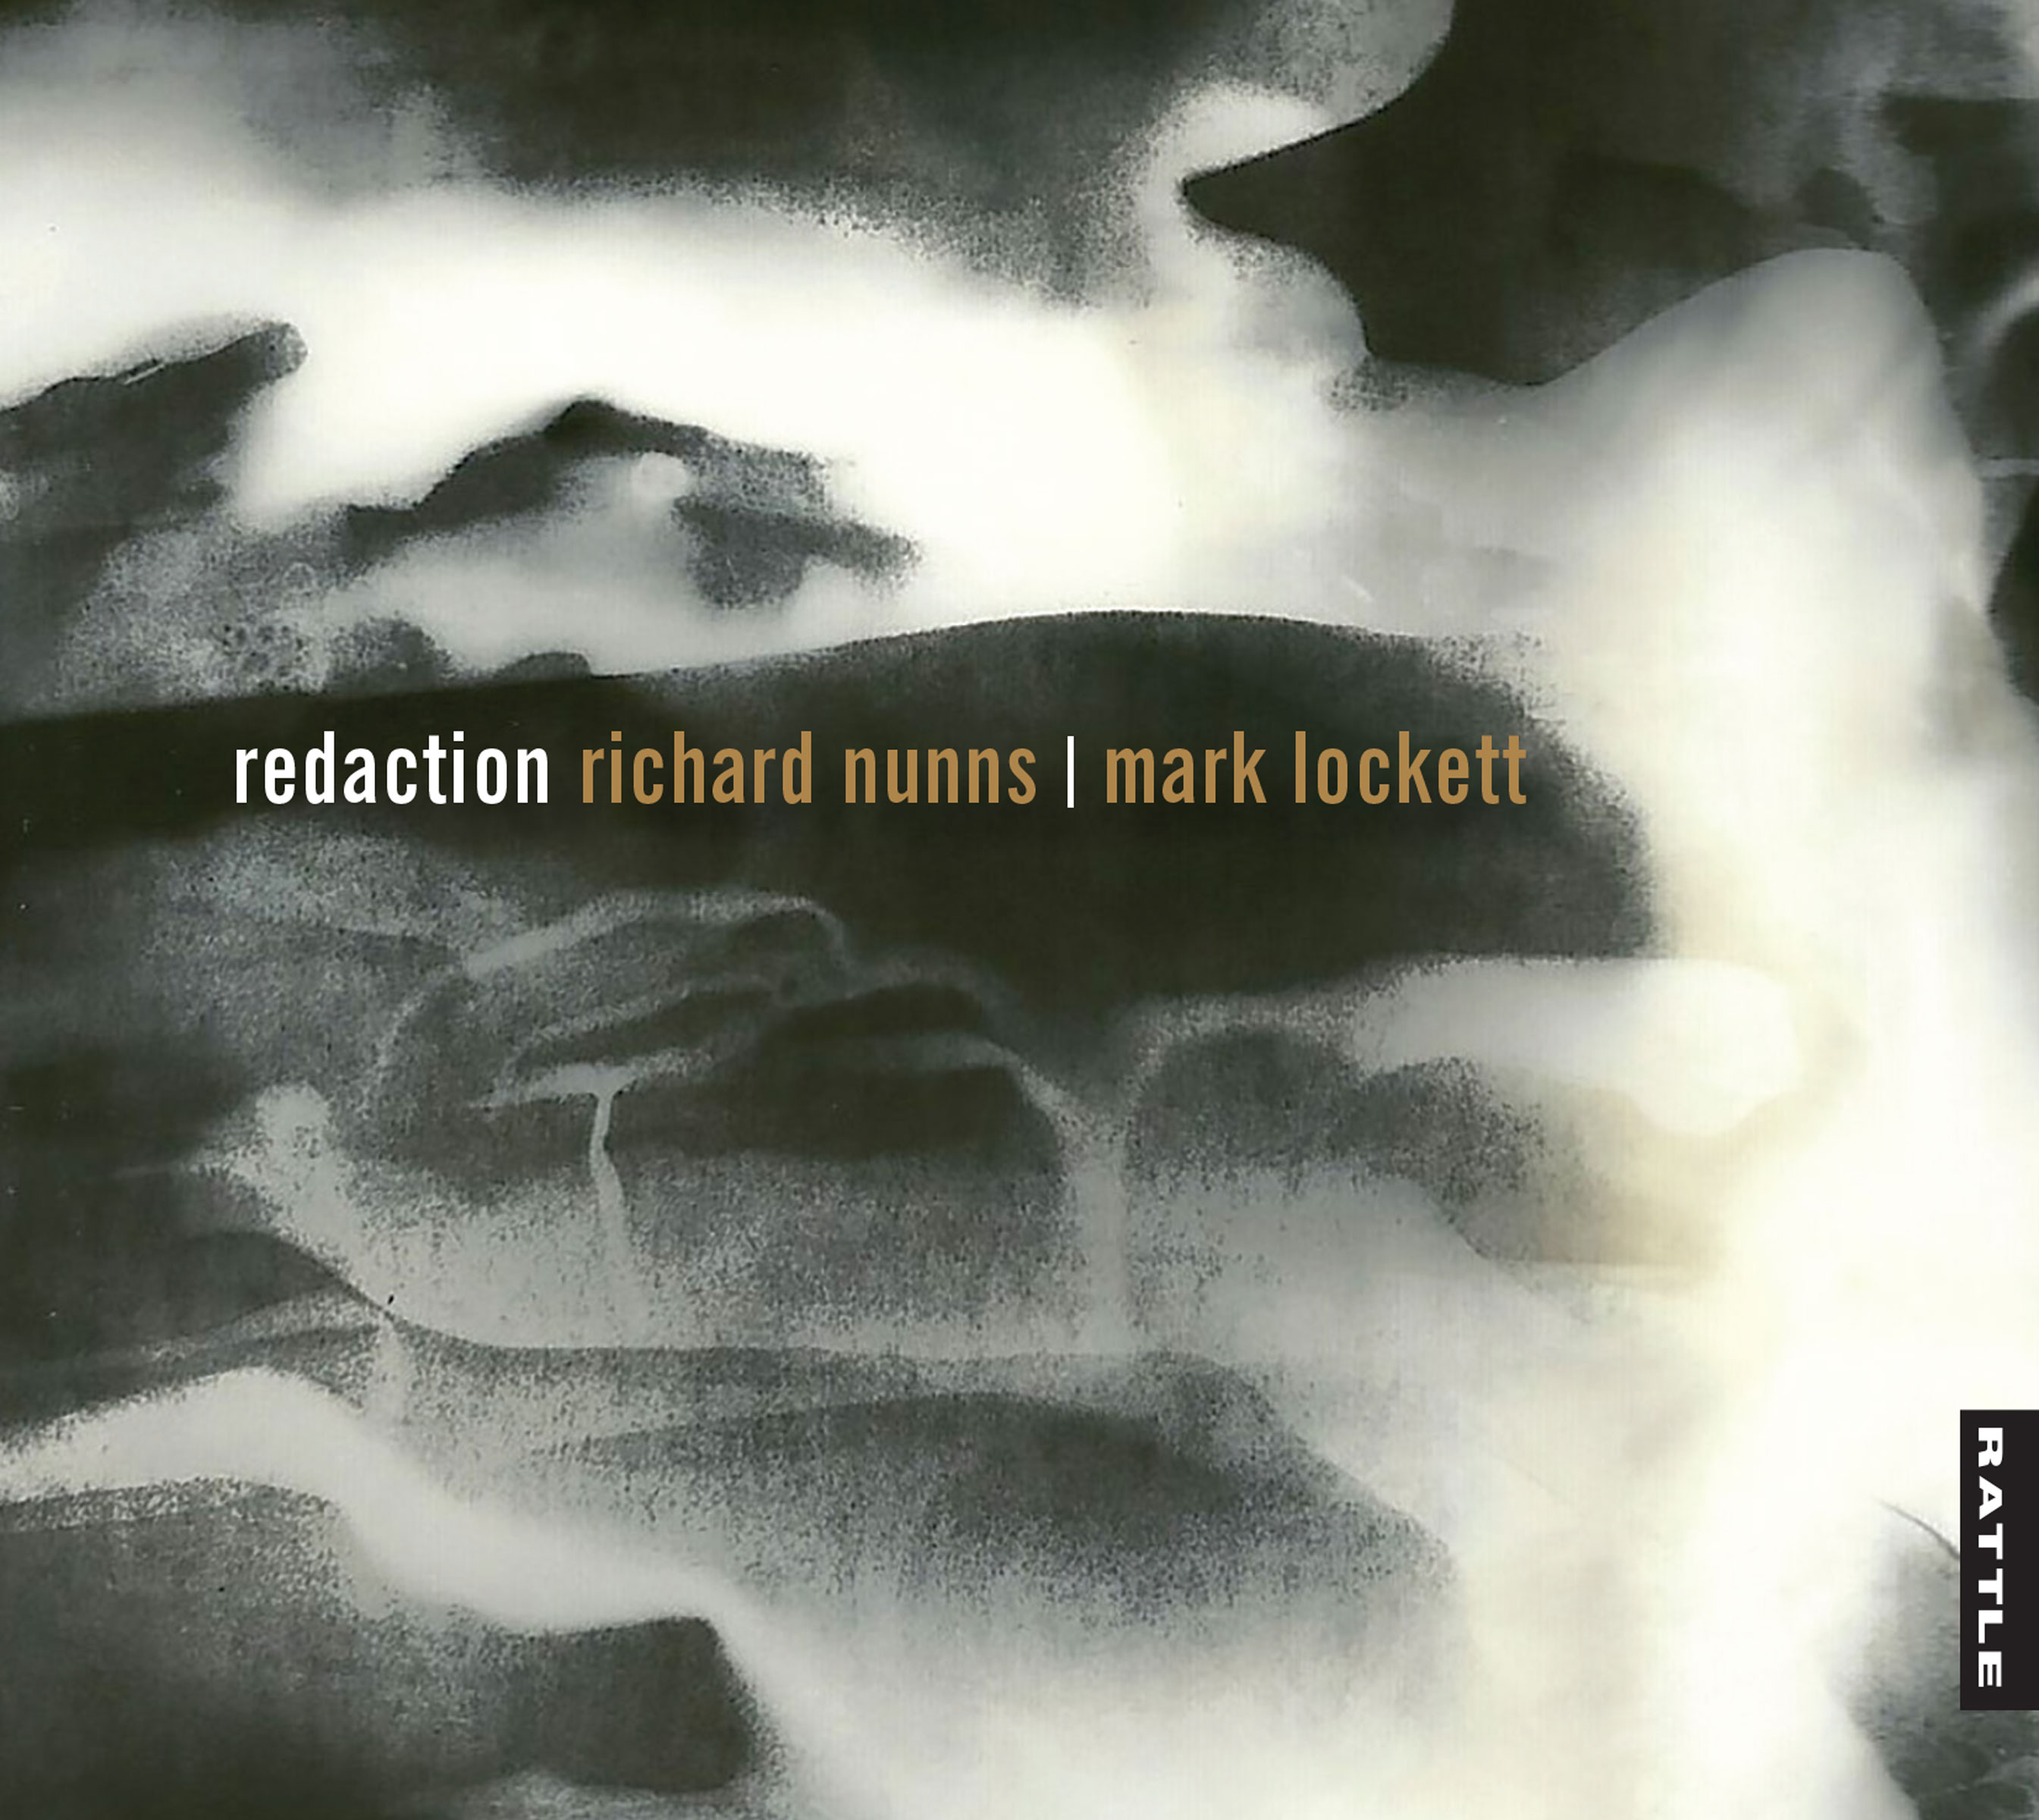 Richard Nunns and Mark Lockett | Redaction - downloadable MP3 ALBUM